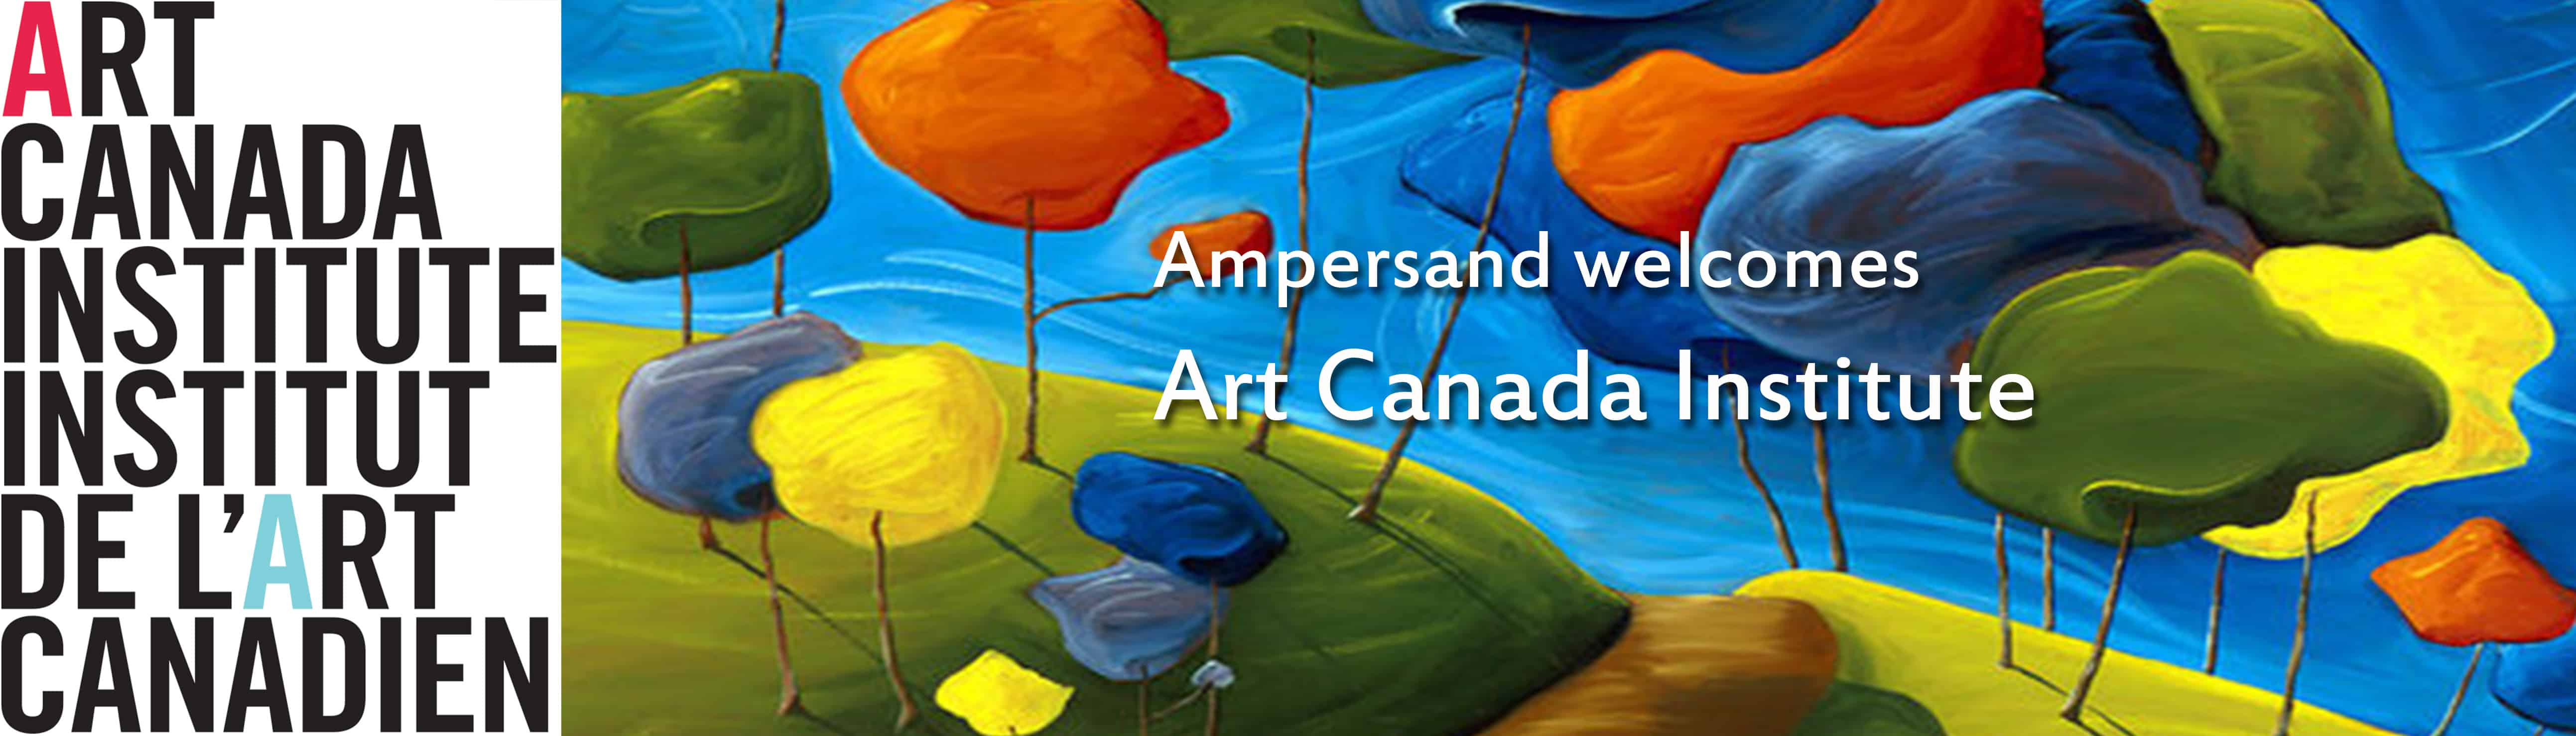 Welcome Art Canada Institute